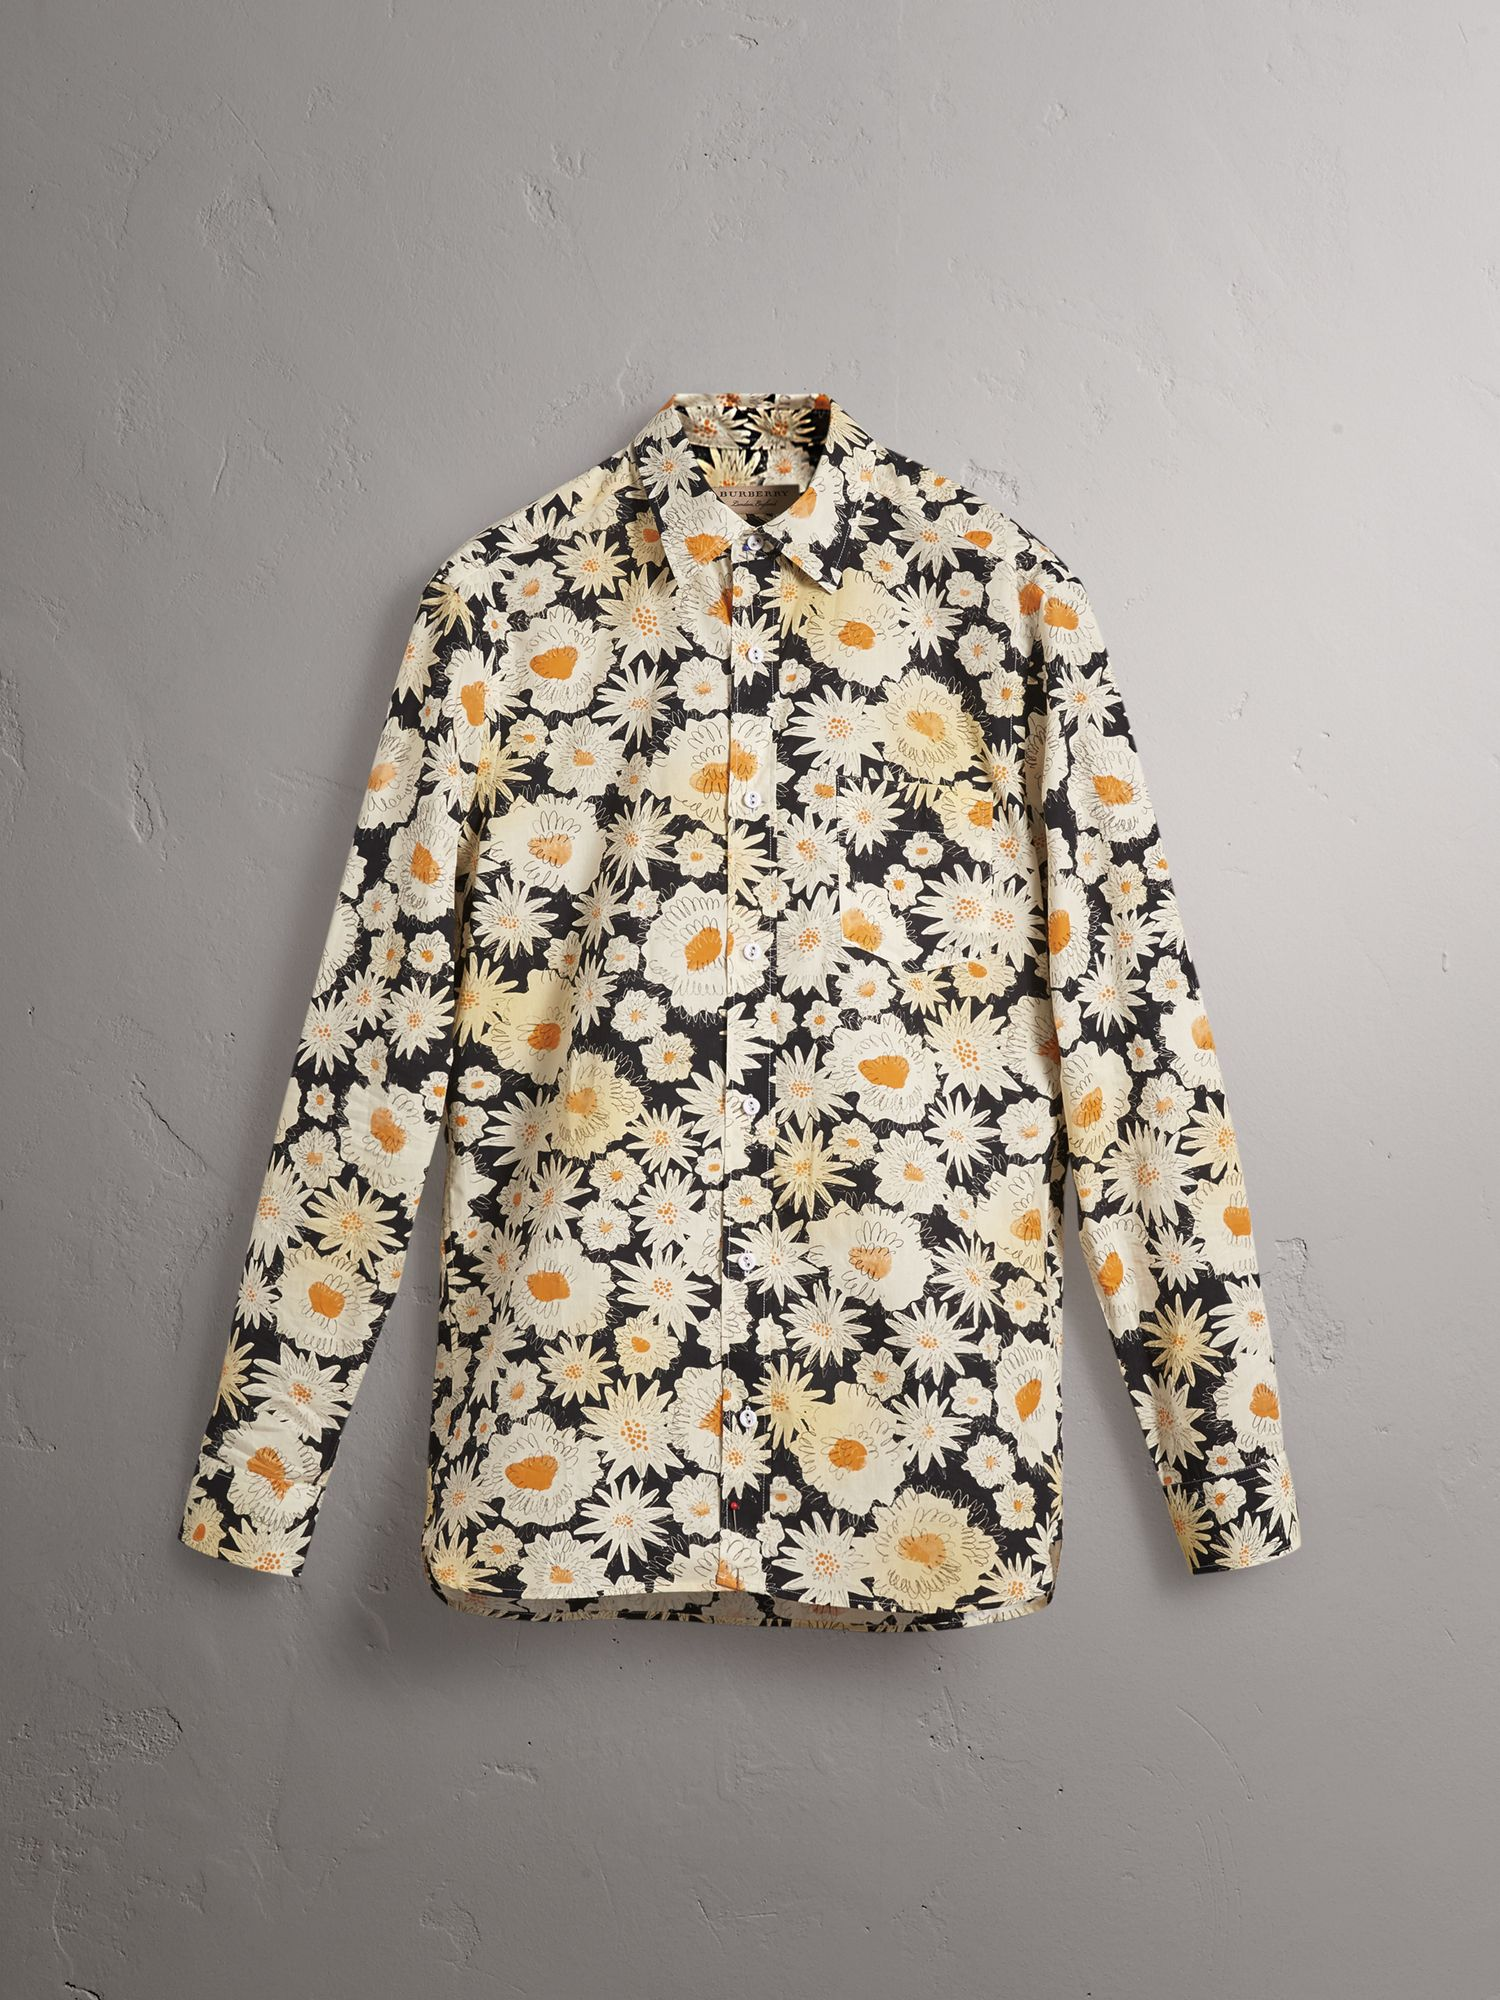 Daisy Print Cotton Shirt in Black